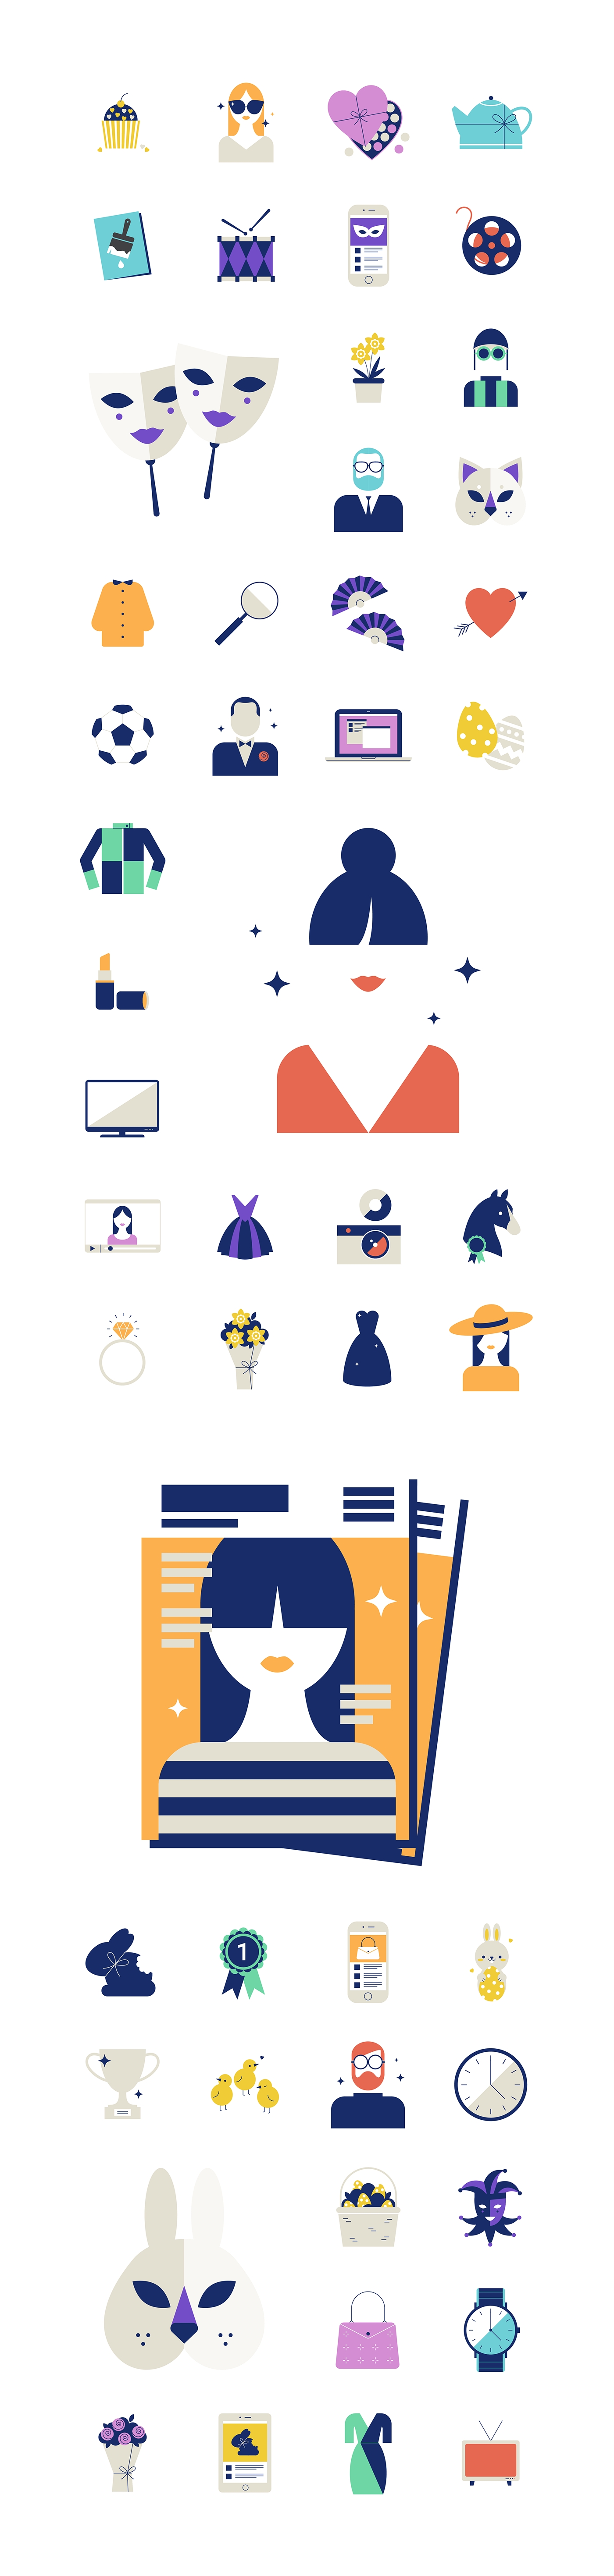 We Created A Suite Of Illustrative Icons For Facebook For Businesses_Facebook Creation With A Calendar Icon